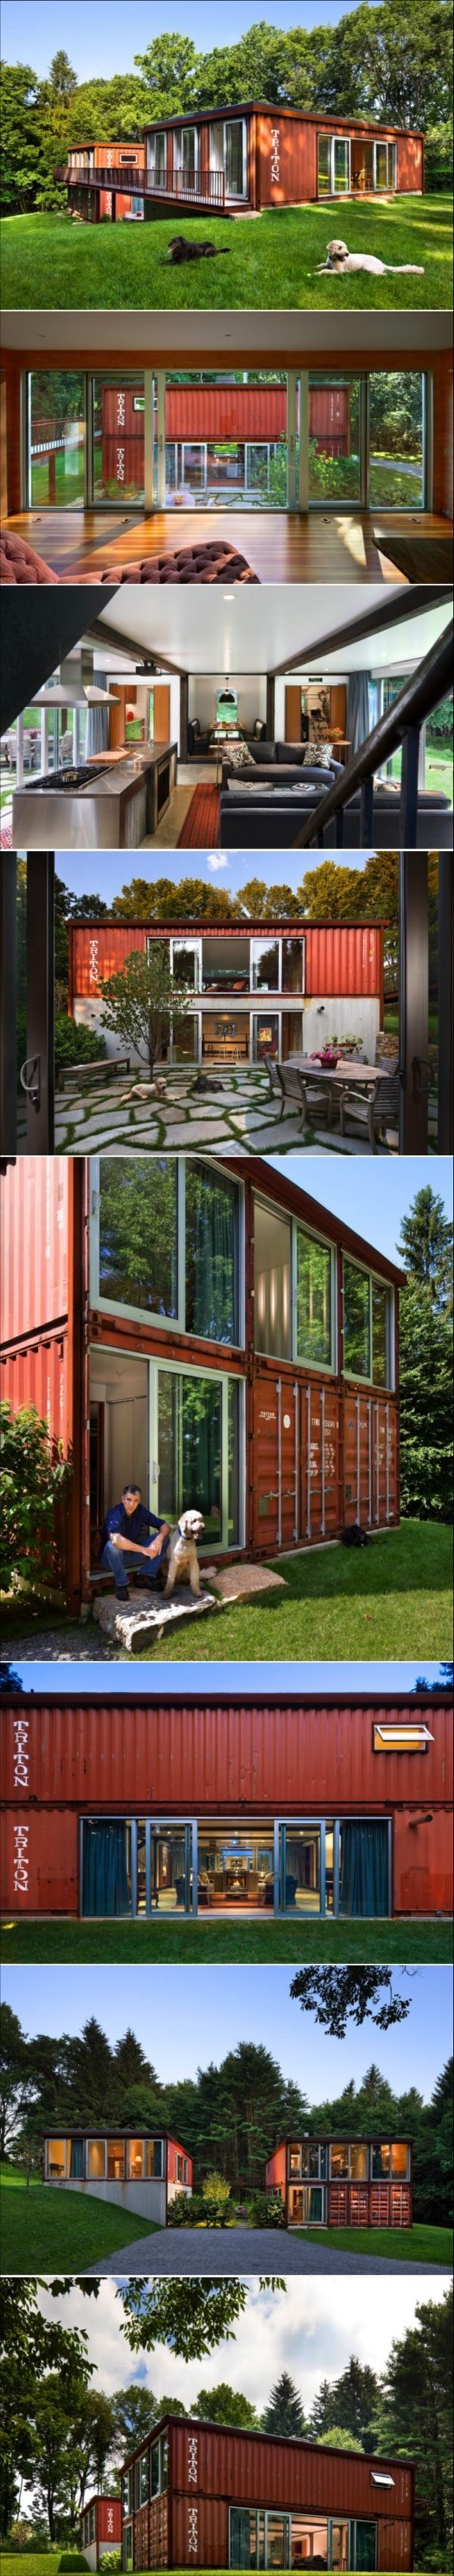 15 best container house images on pinterest